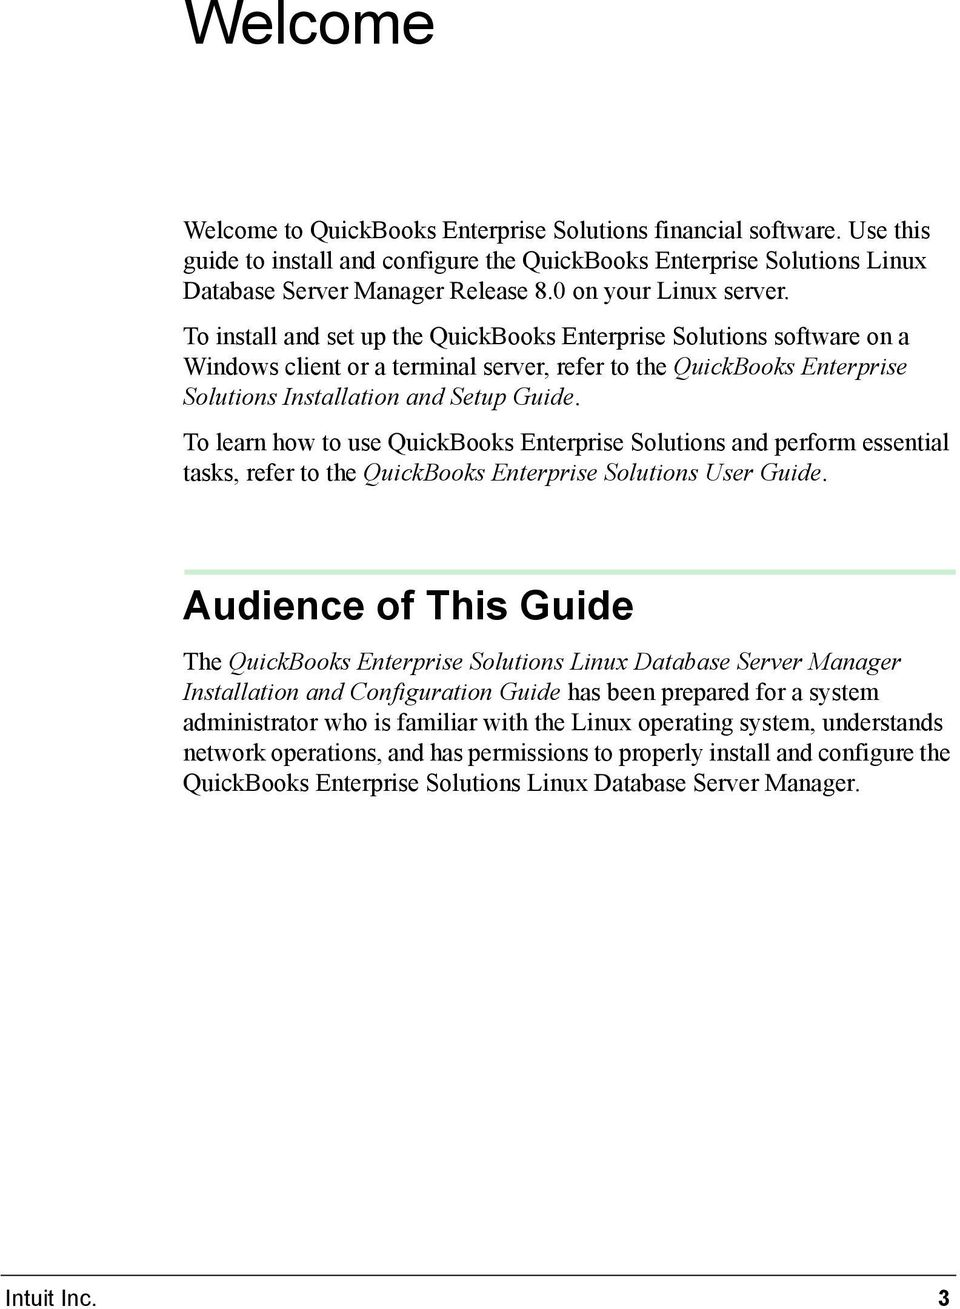 To install and set up the QuickBooks Enterprise Solutions software on a Windows client or a terminal server, refer to the QuickBooks Enterprise Solutions Installation and Setup Guide.